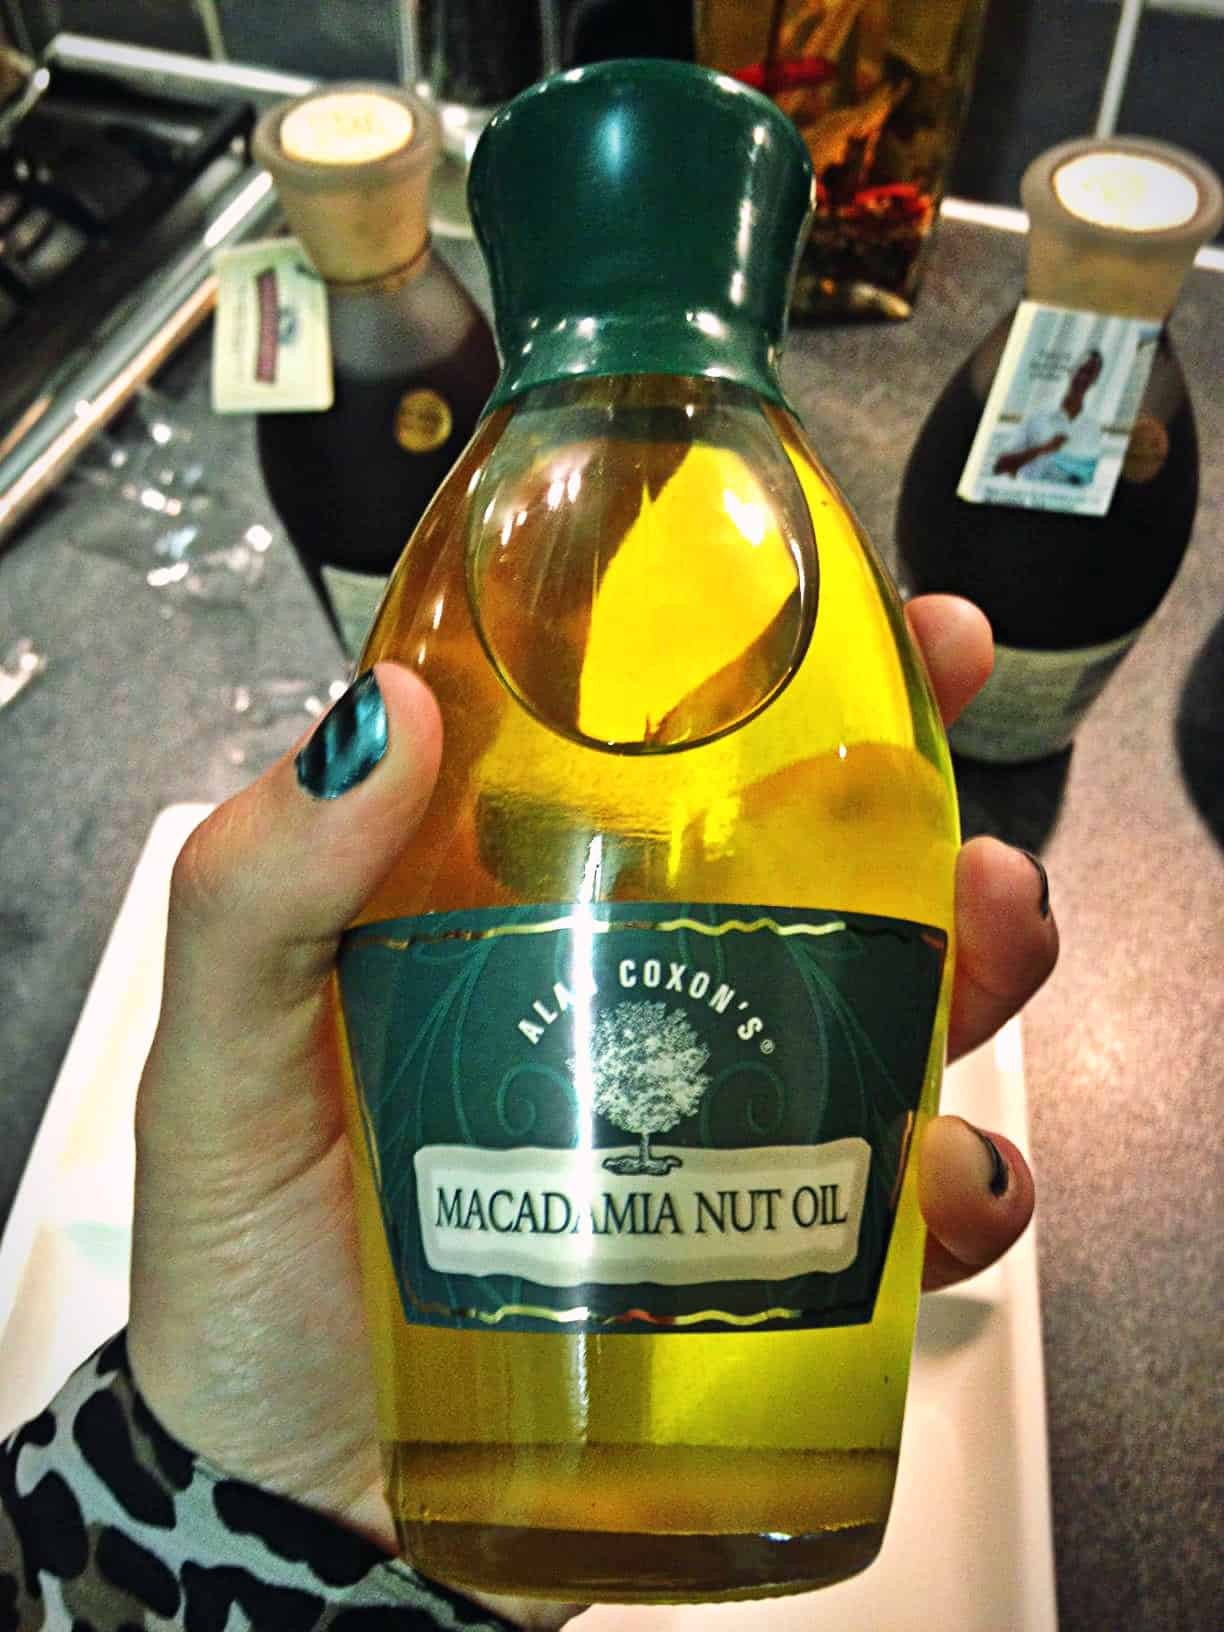 Alan Coxon macadamia nut oil